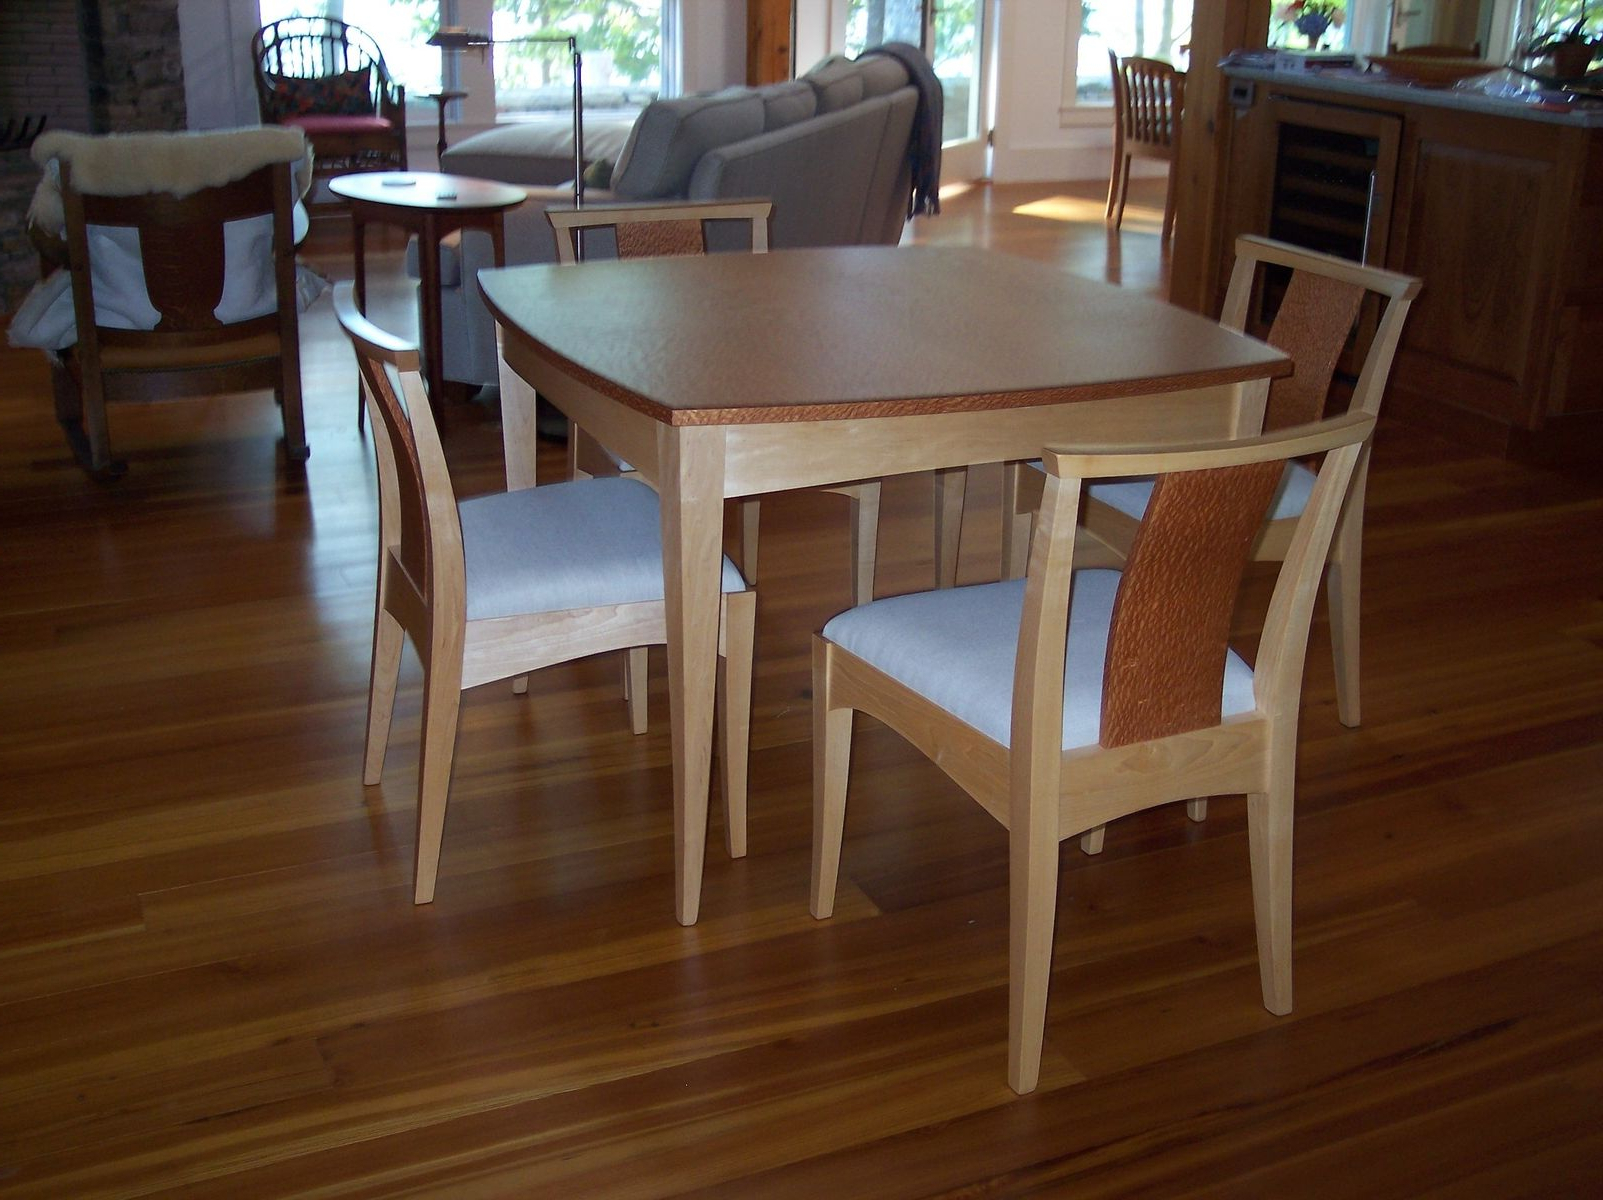 Widely Used Small Rustic Look Dining Tables With Regard To Hand Made Curvy, Square Small Dining Table And Chairs (View 25 of 25)